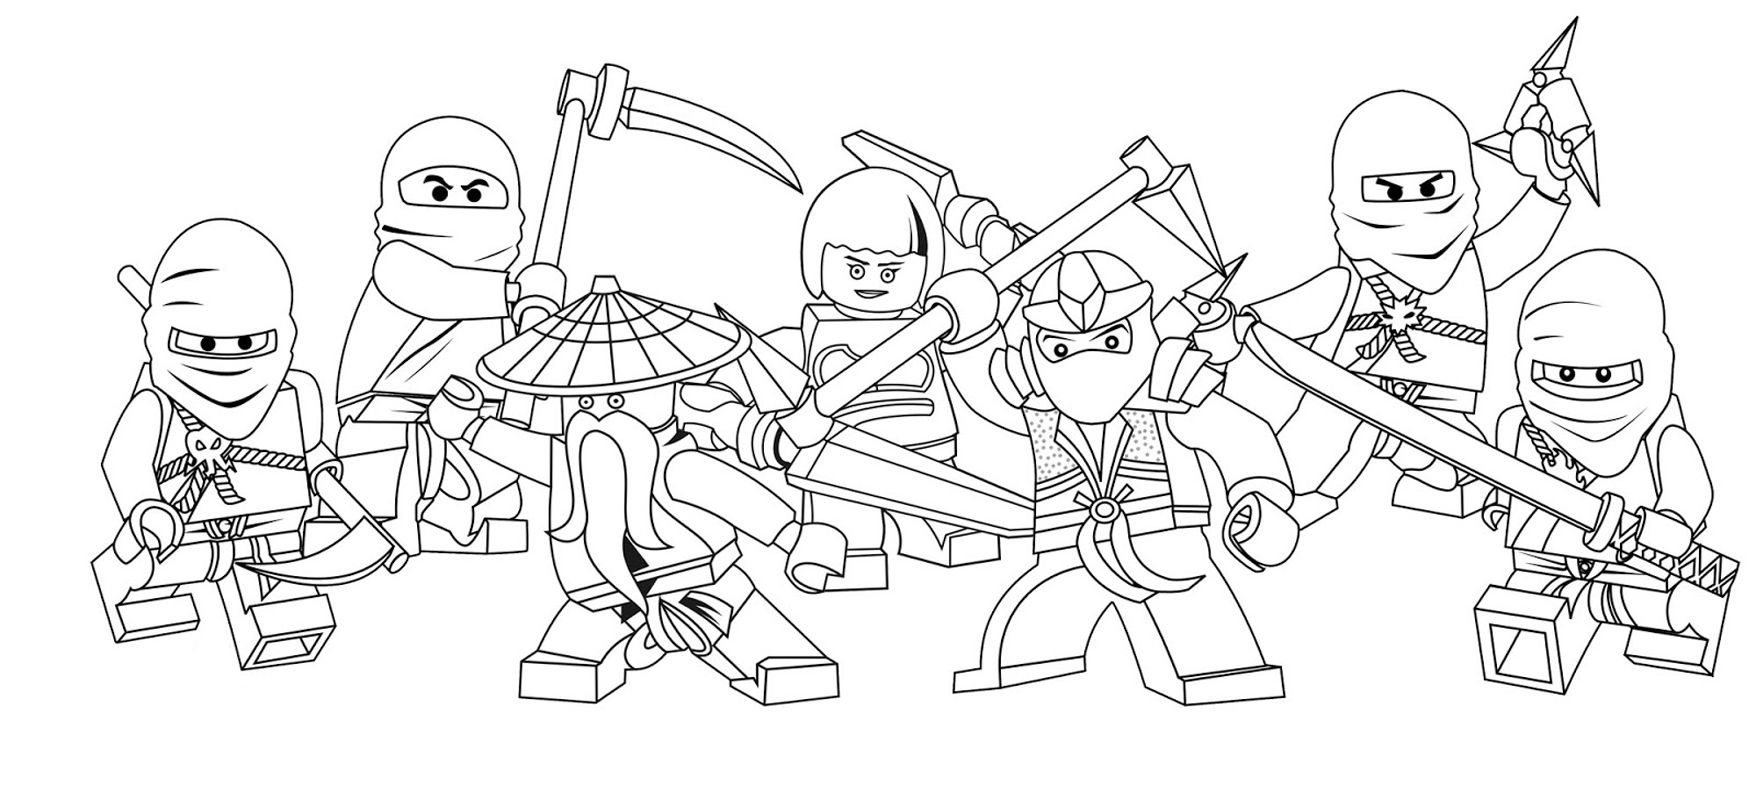 ninjago coloring pages - Free Large Images | Coloring | Pinterest ...